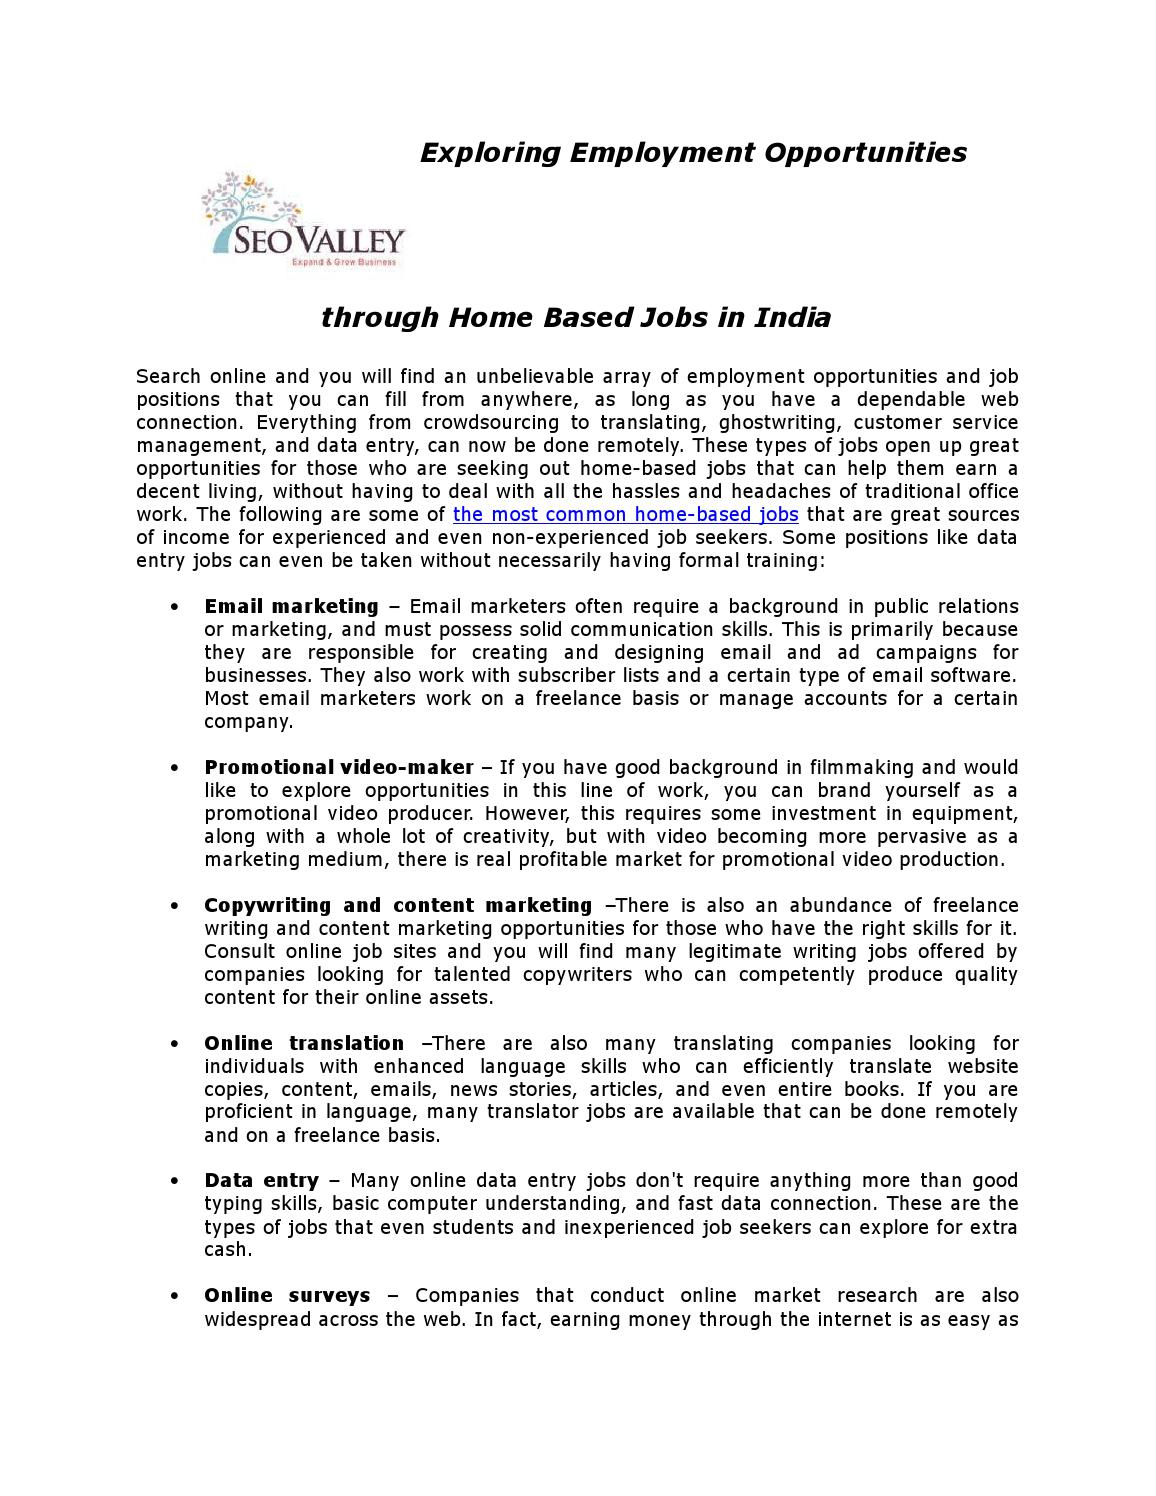 Exploring Employment Opportunities through Home Based Jobs in India